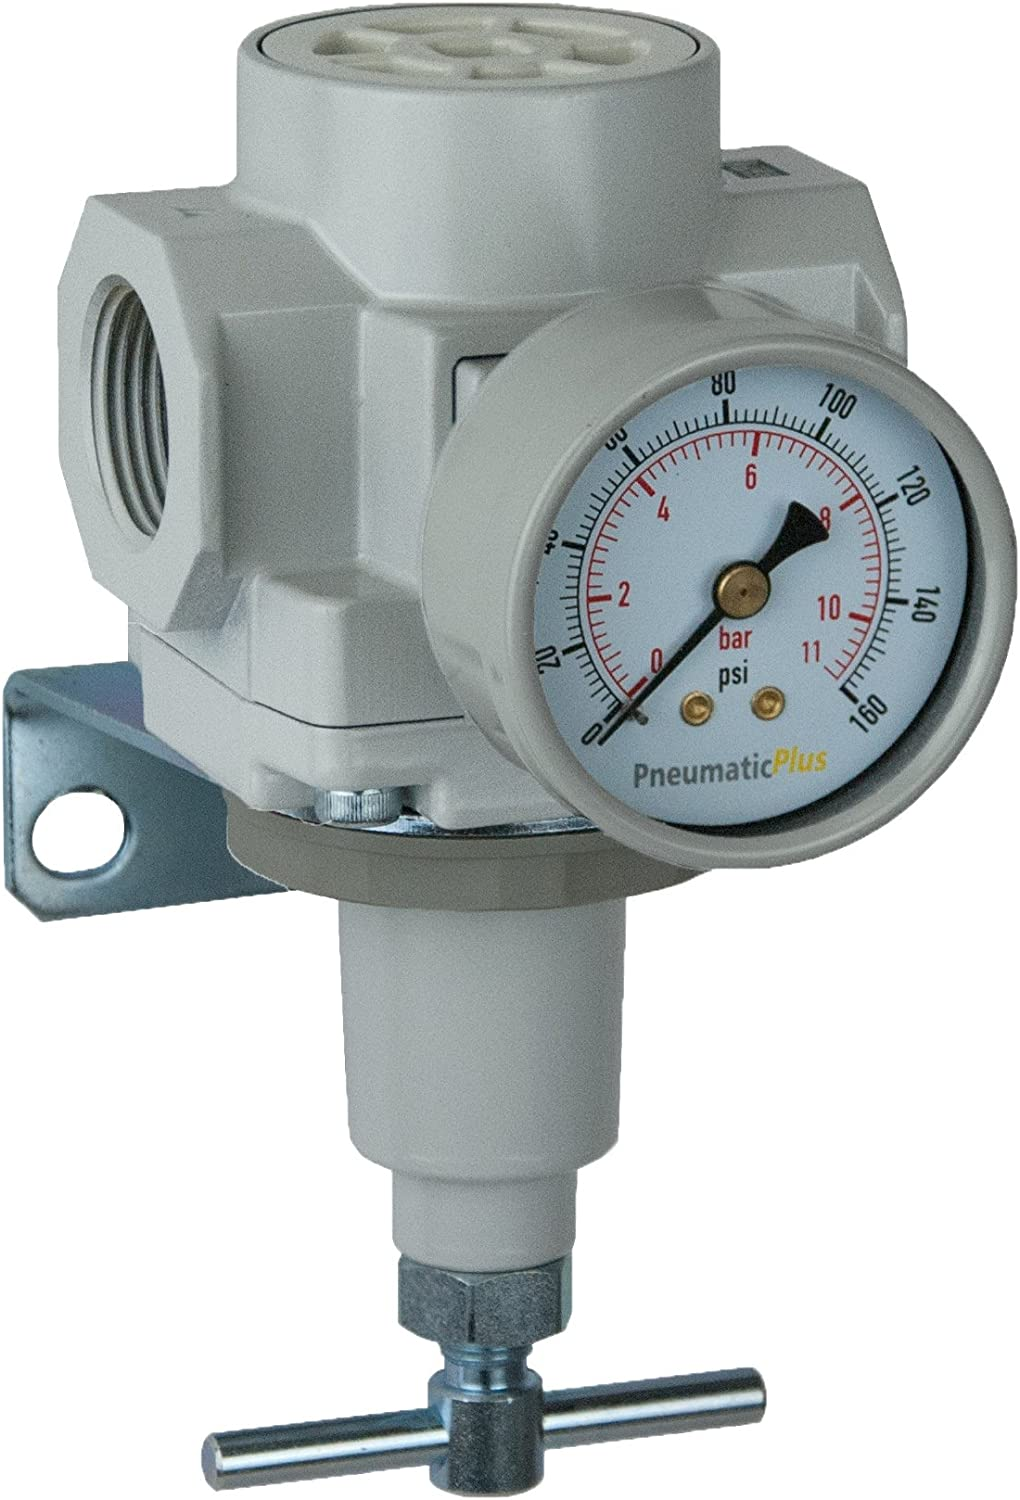 "PneumaticPlus SAR600T-N10BG Compressed Air Pressure Regulator 1"" NPT with Gauge & Bracket (T-Handle)"